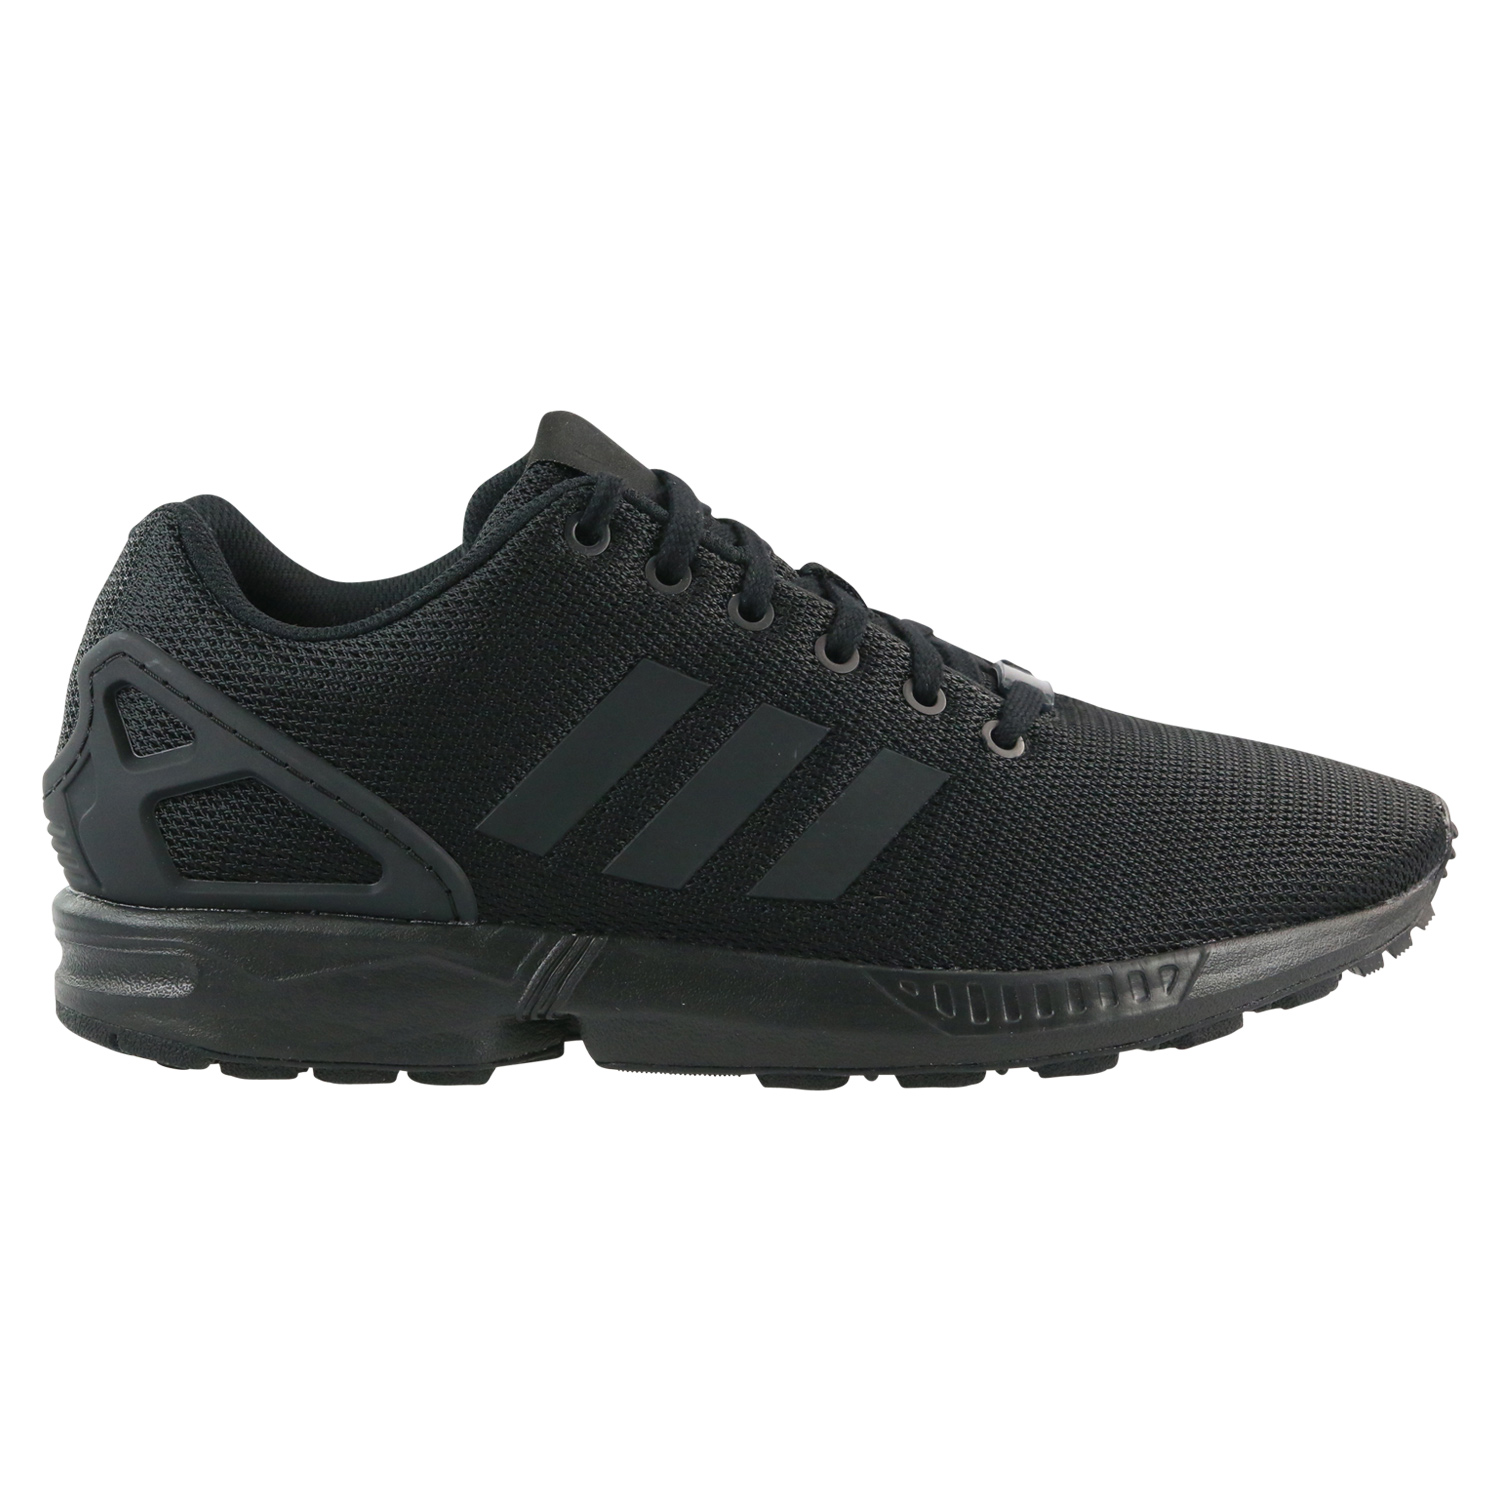 adidas originals zx flux schuhe turnschuhe sneaker damen. Black Bedroom Furniture Sets. Home Design Ideas